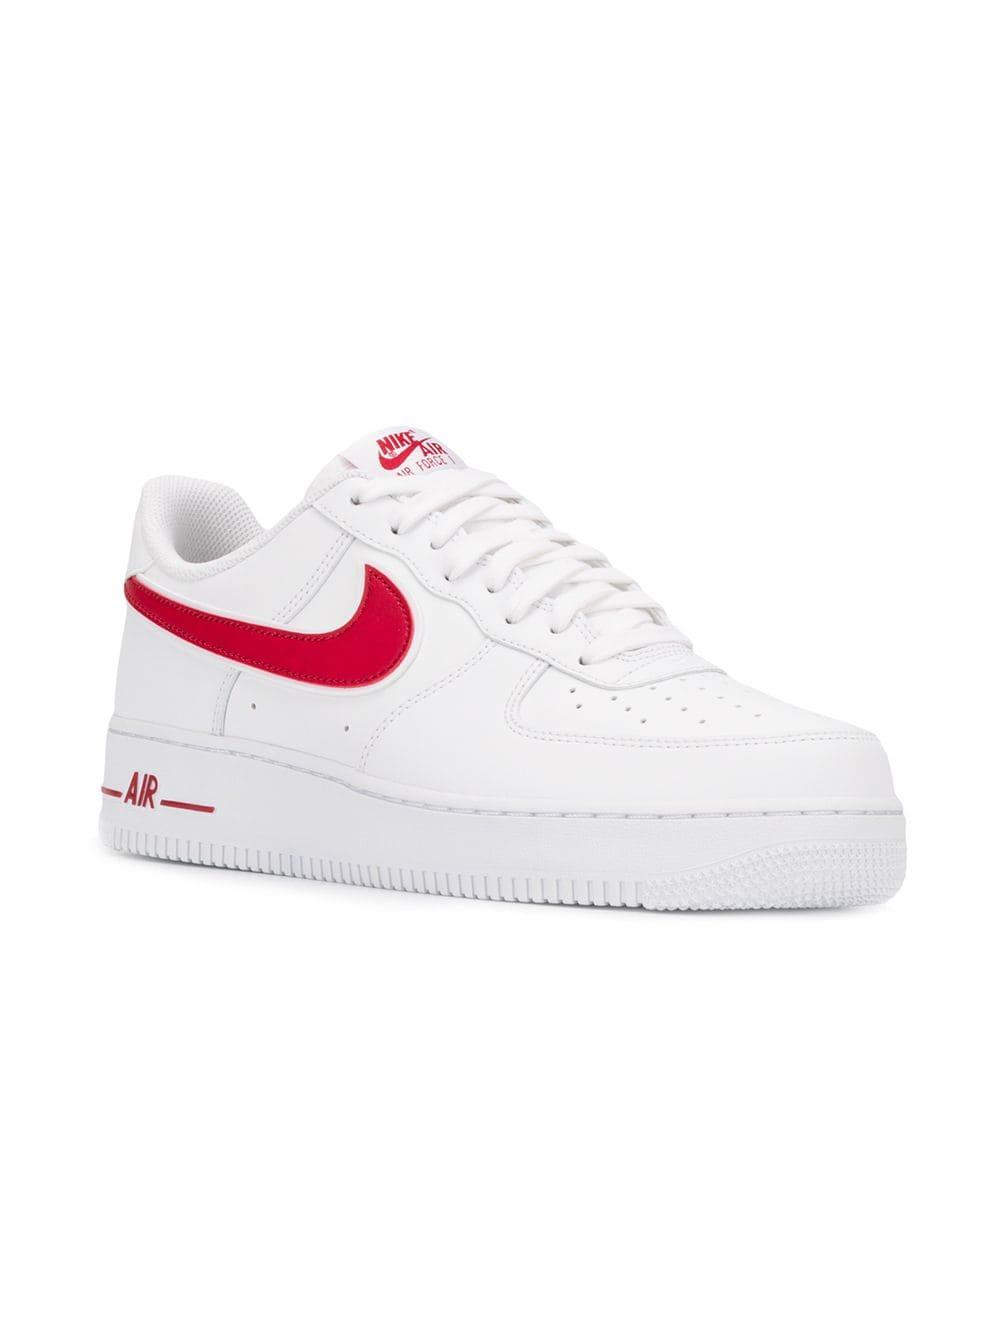 new style c6c18 7c57f Nike - White Air Force 1 Sneakers for Men - Lyst. View fullscreen